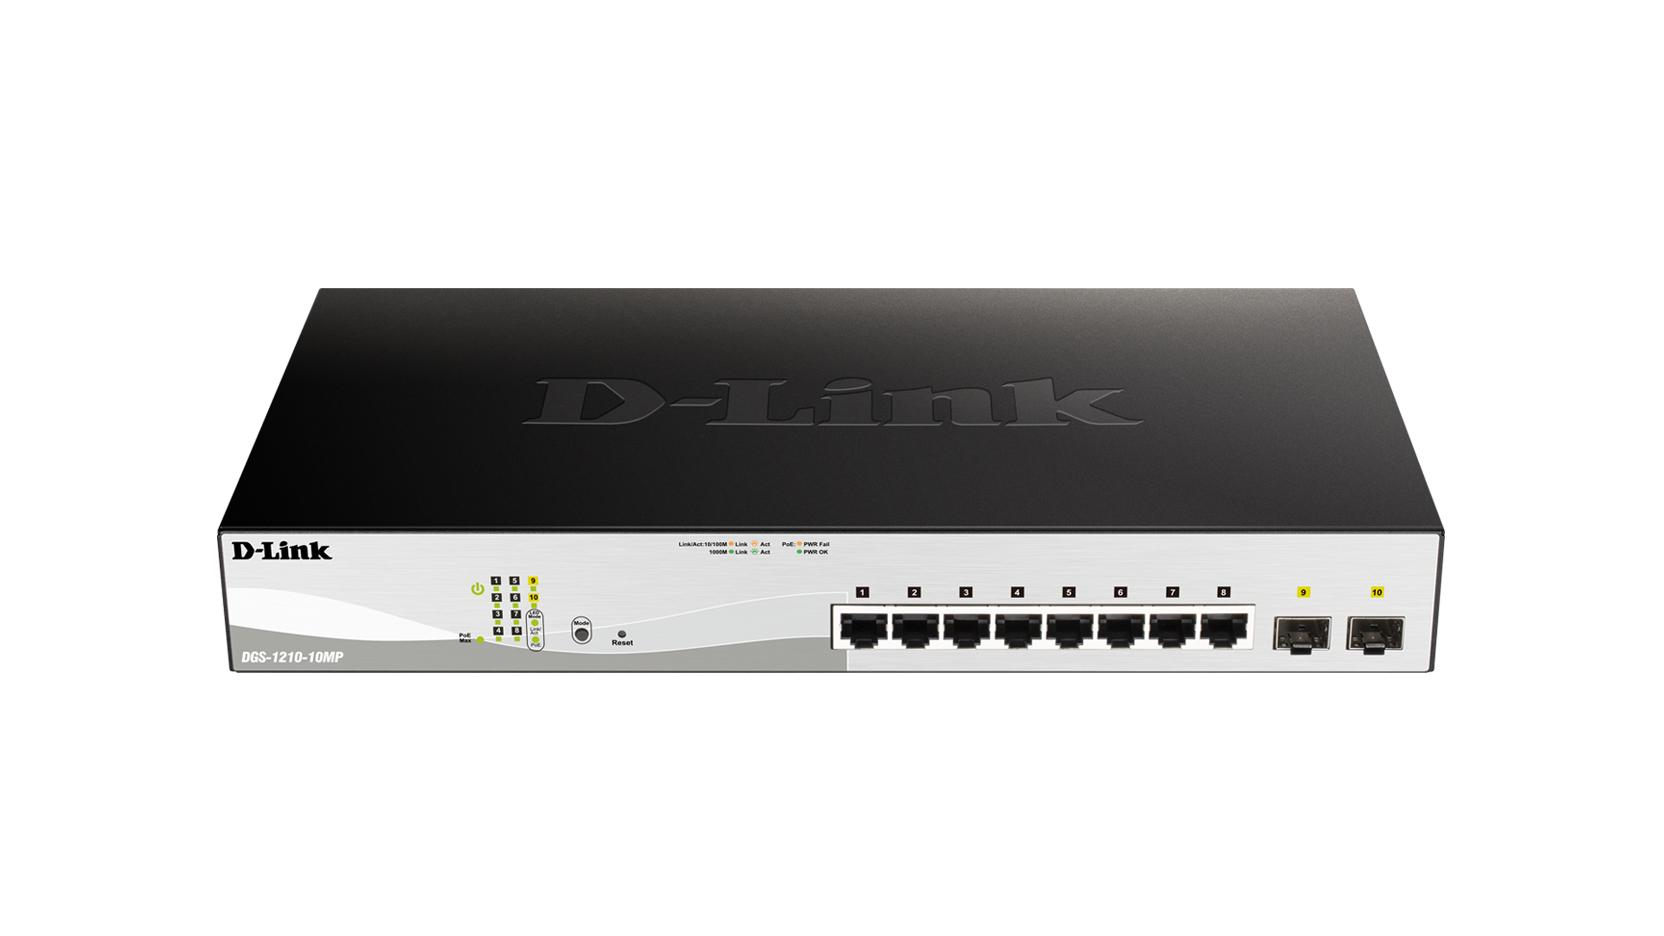 D-Link DGS-1210-10MP 8-poorts POE Managed Gigabit netwerk